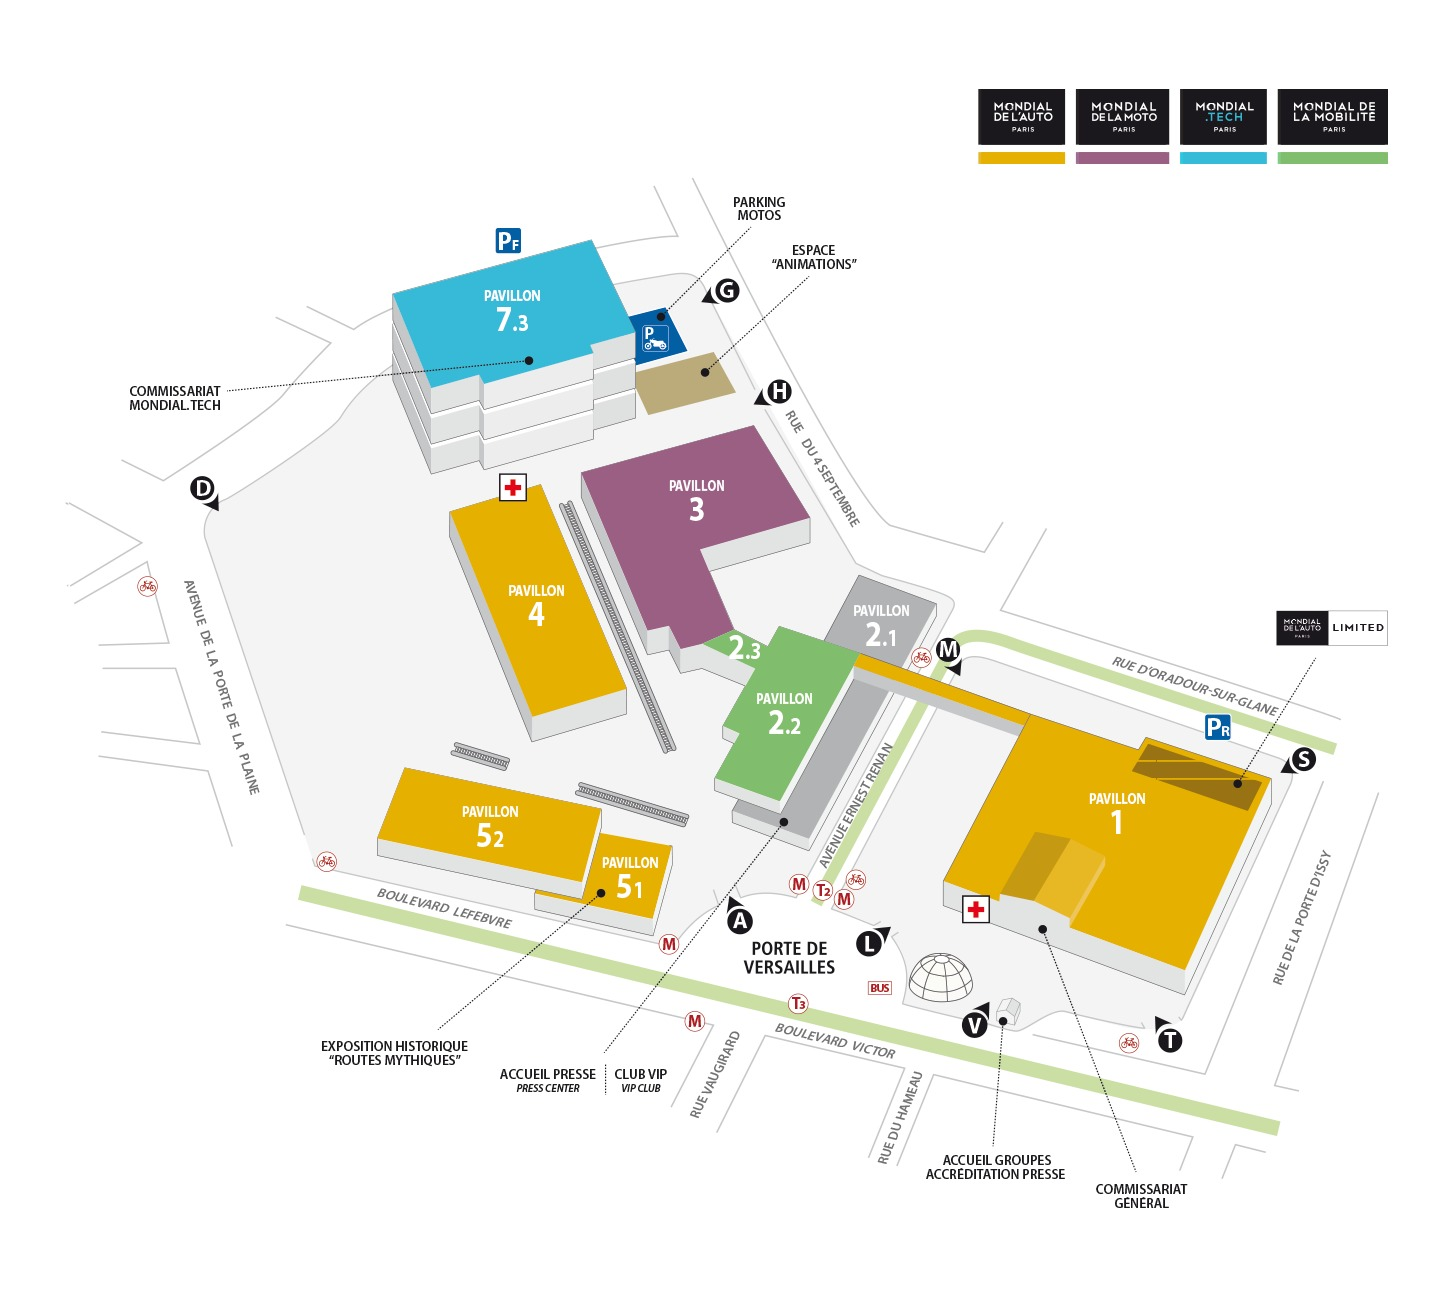 Plan Salon Du Cheval Paris Mondial De Paris 2018 Le Plan Du Salon